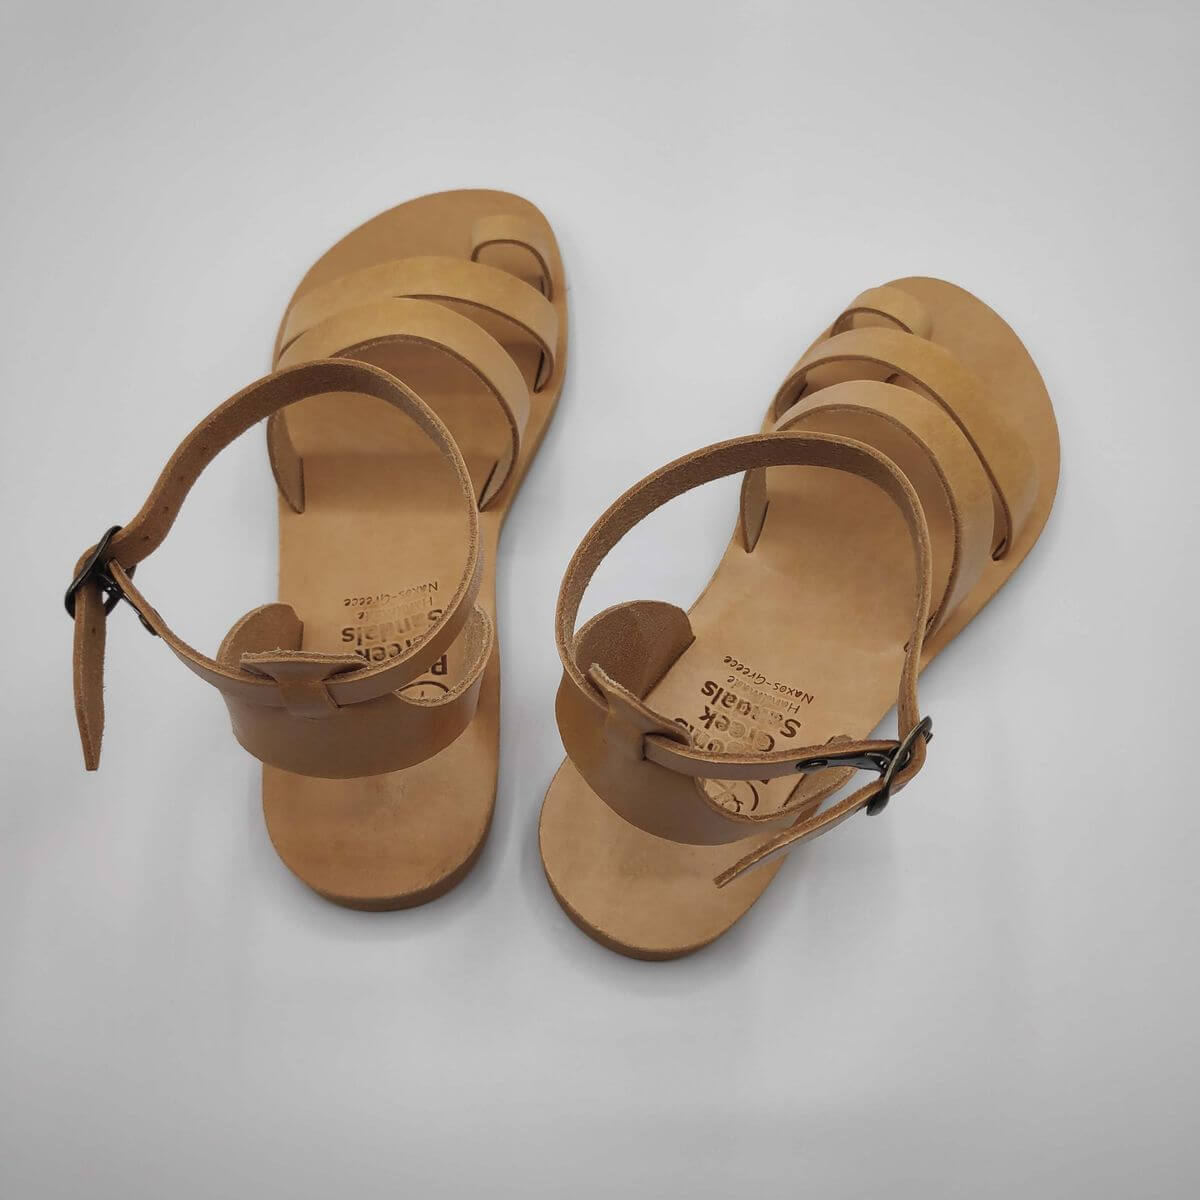 Natural Tan leather dressy sandals with two straps, toe ring and high ankle strap, back view